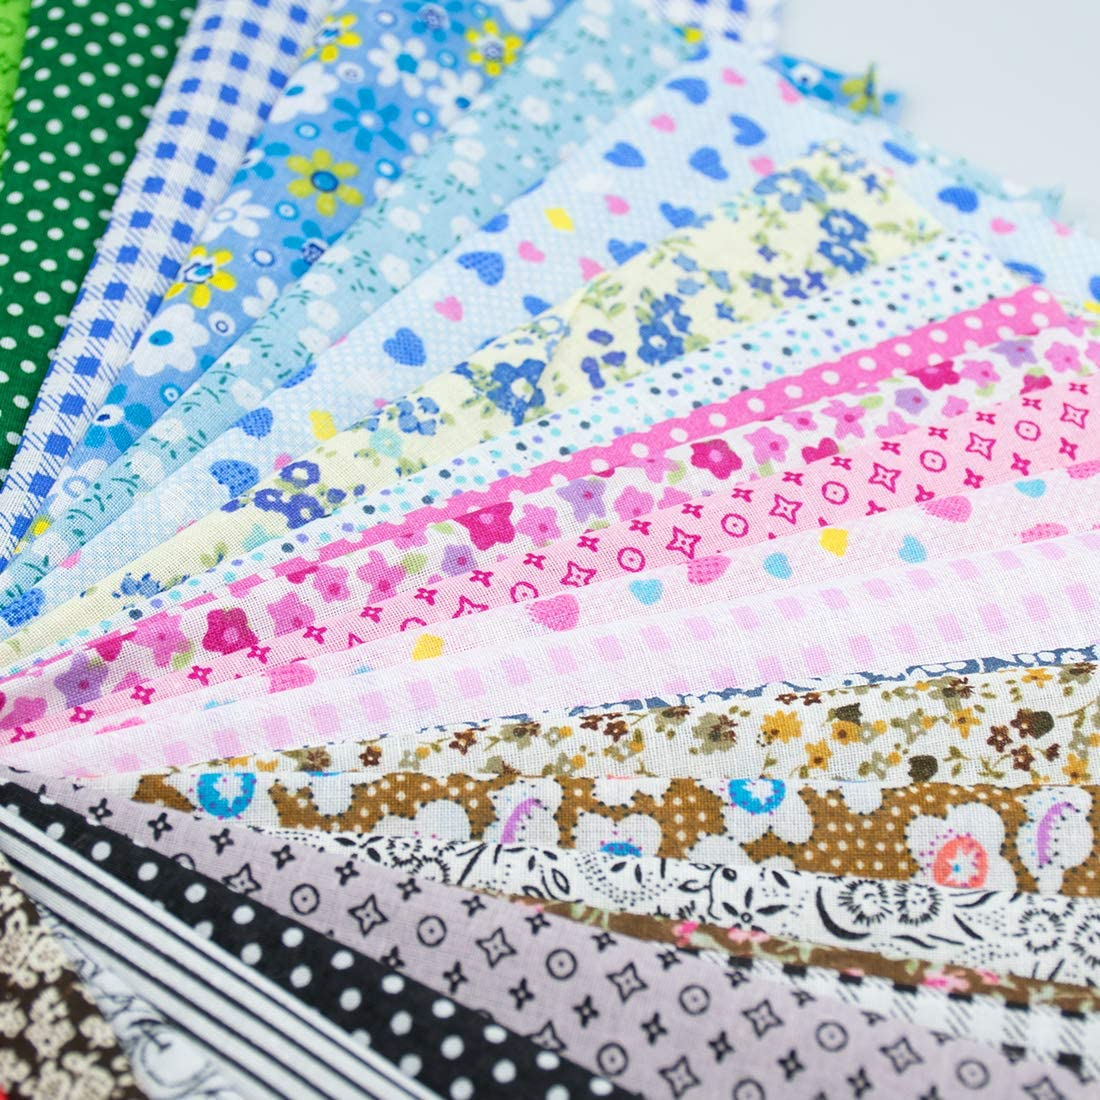 Printed Patchwork Squares for DIY Sewing Quilting Scrapbooking 20cm x 20cm Foraineam 50 Pieces Assorted Cotton Craft Fabric Bundle 8 x 8